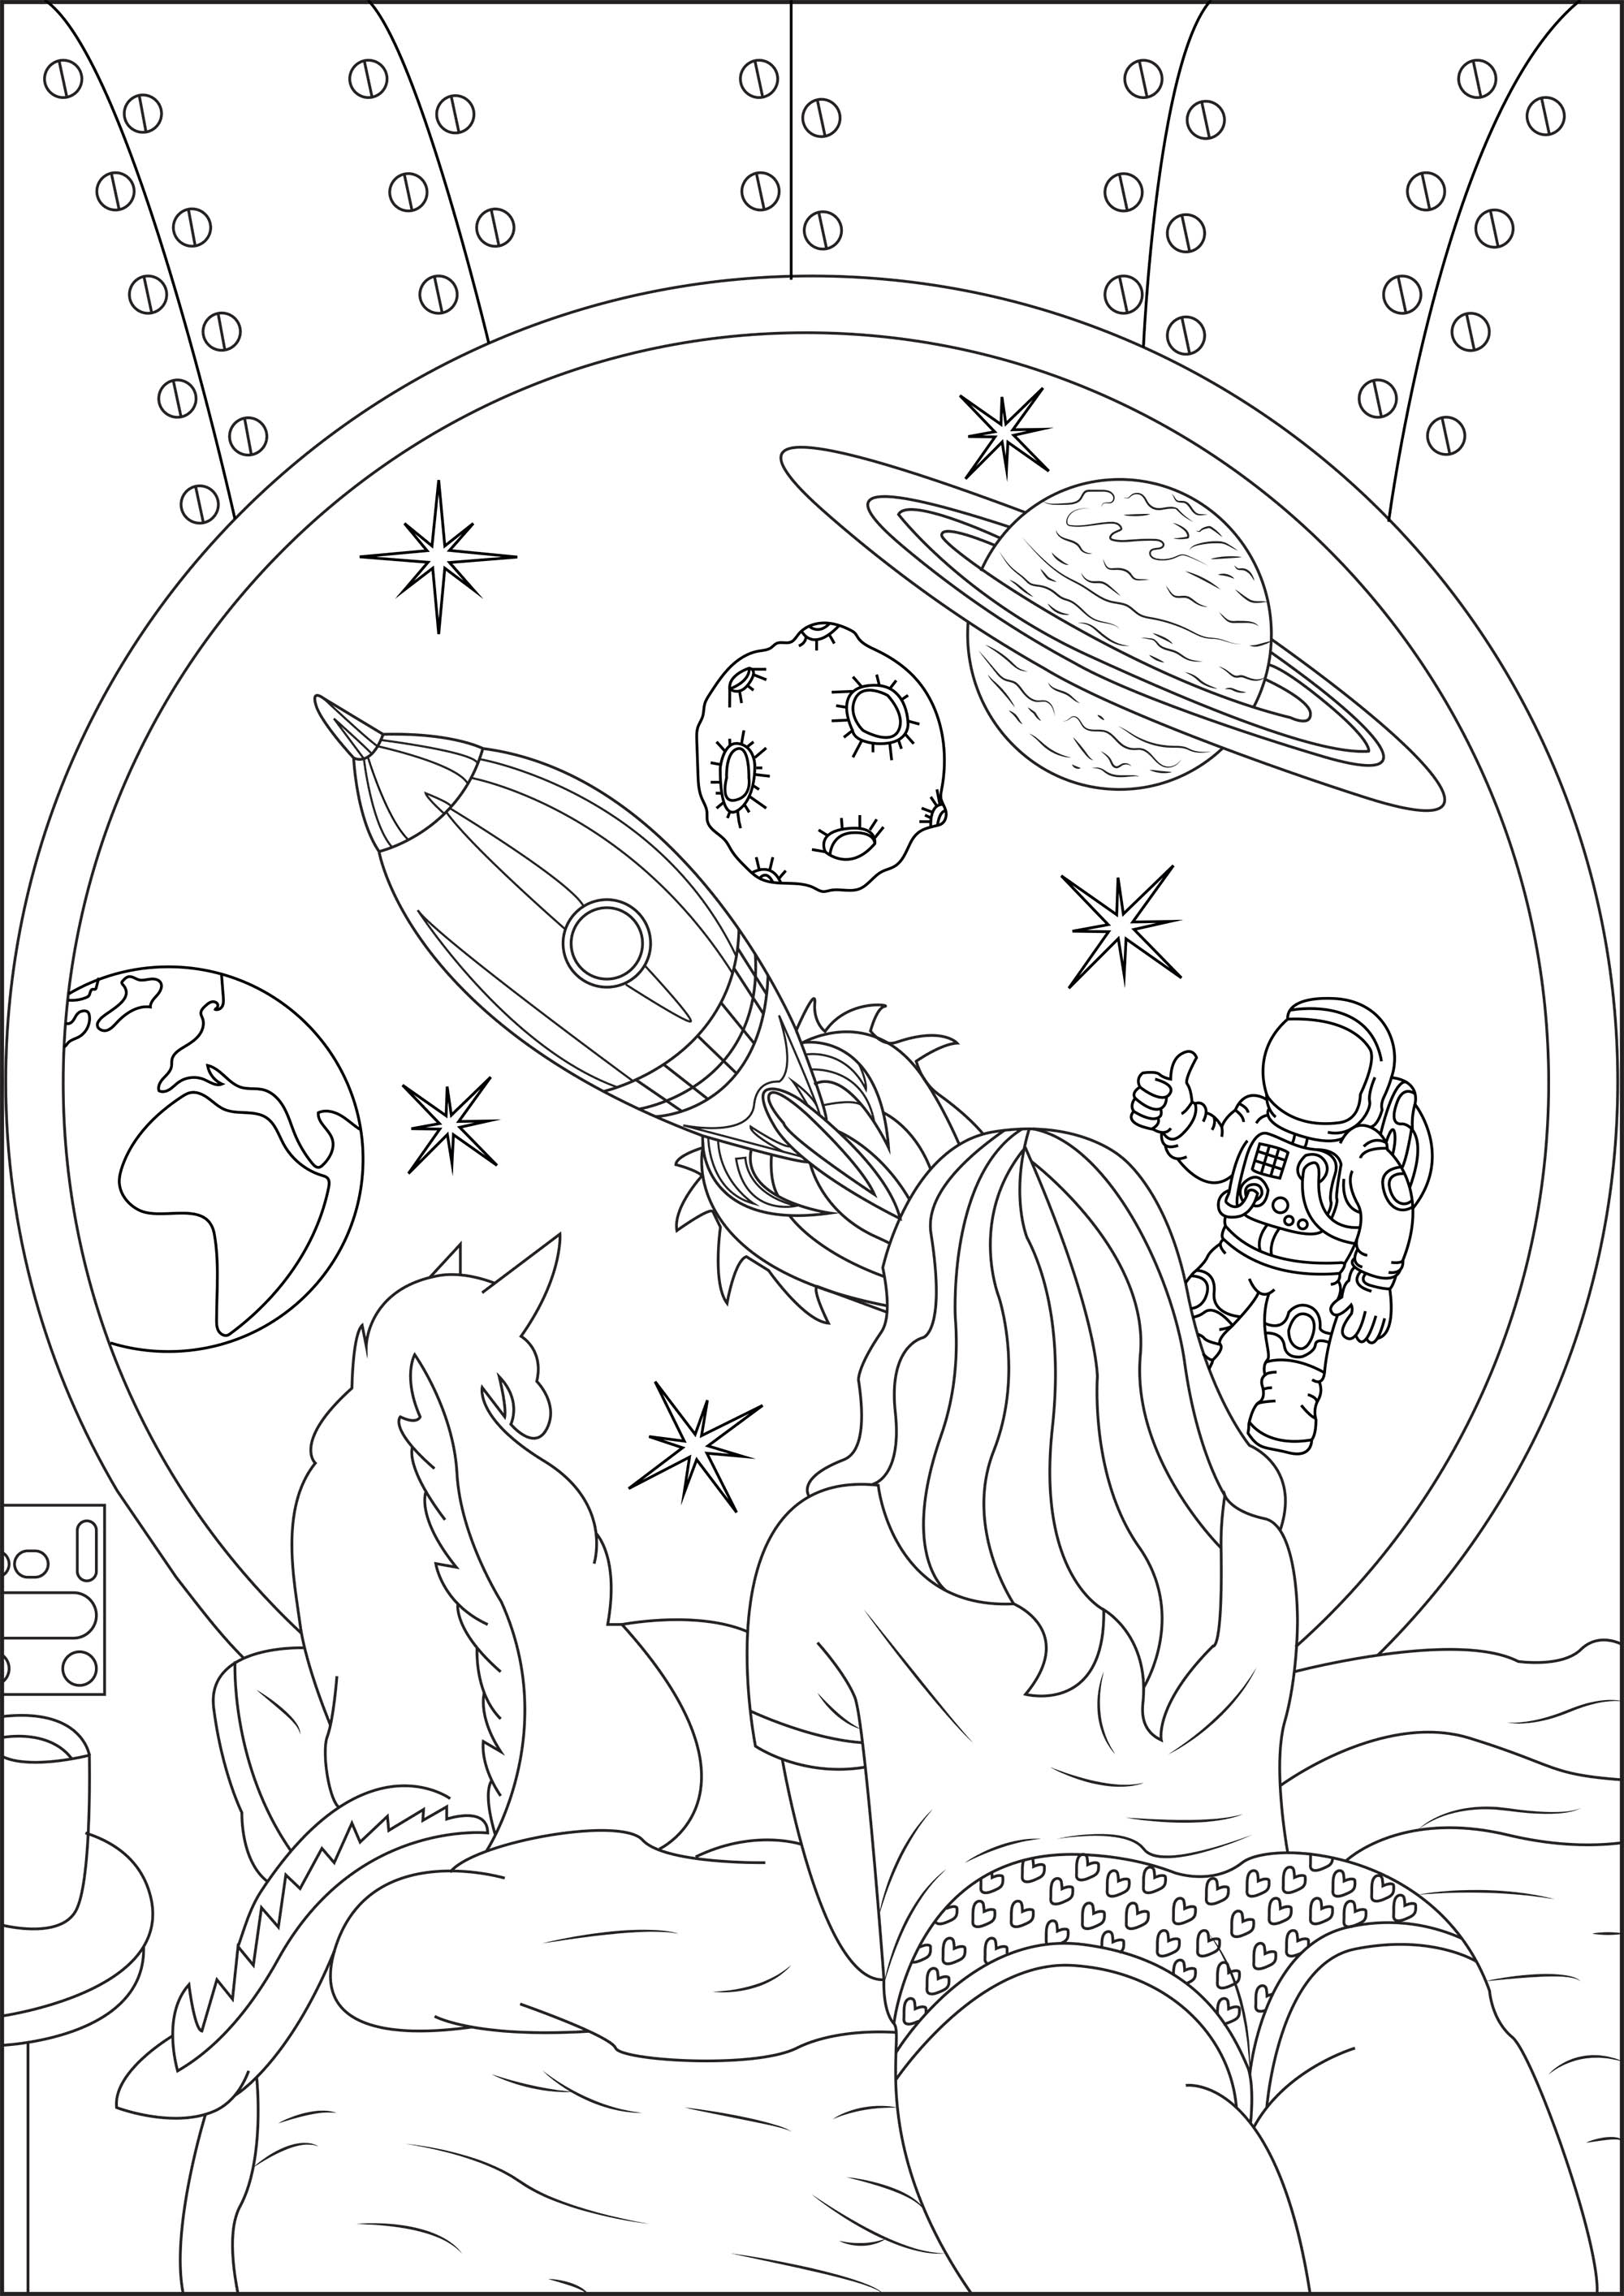 Coloring girl dream space travel